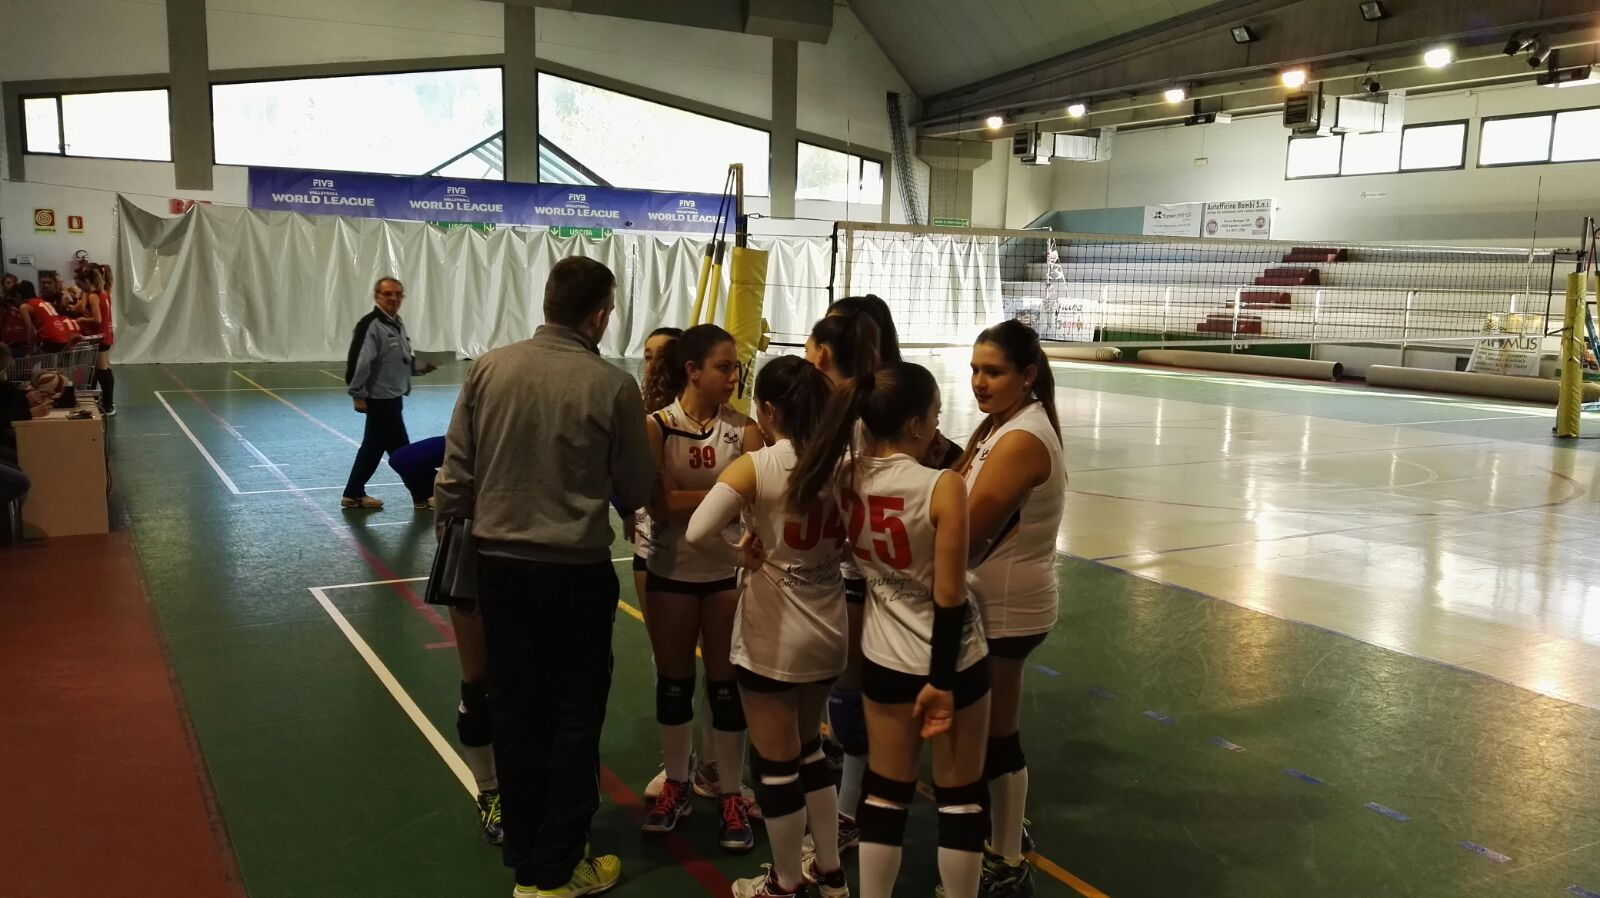 UNDER 14 UISP ULTIMA PARTITA DEL GIRONE